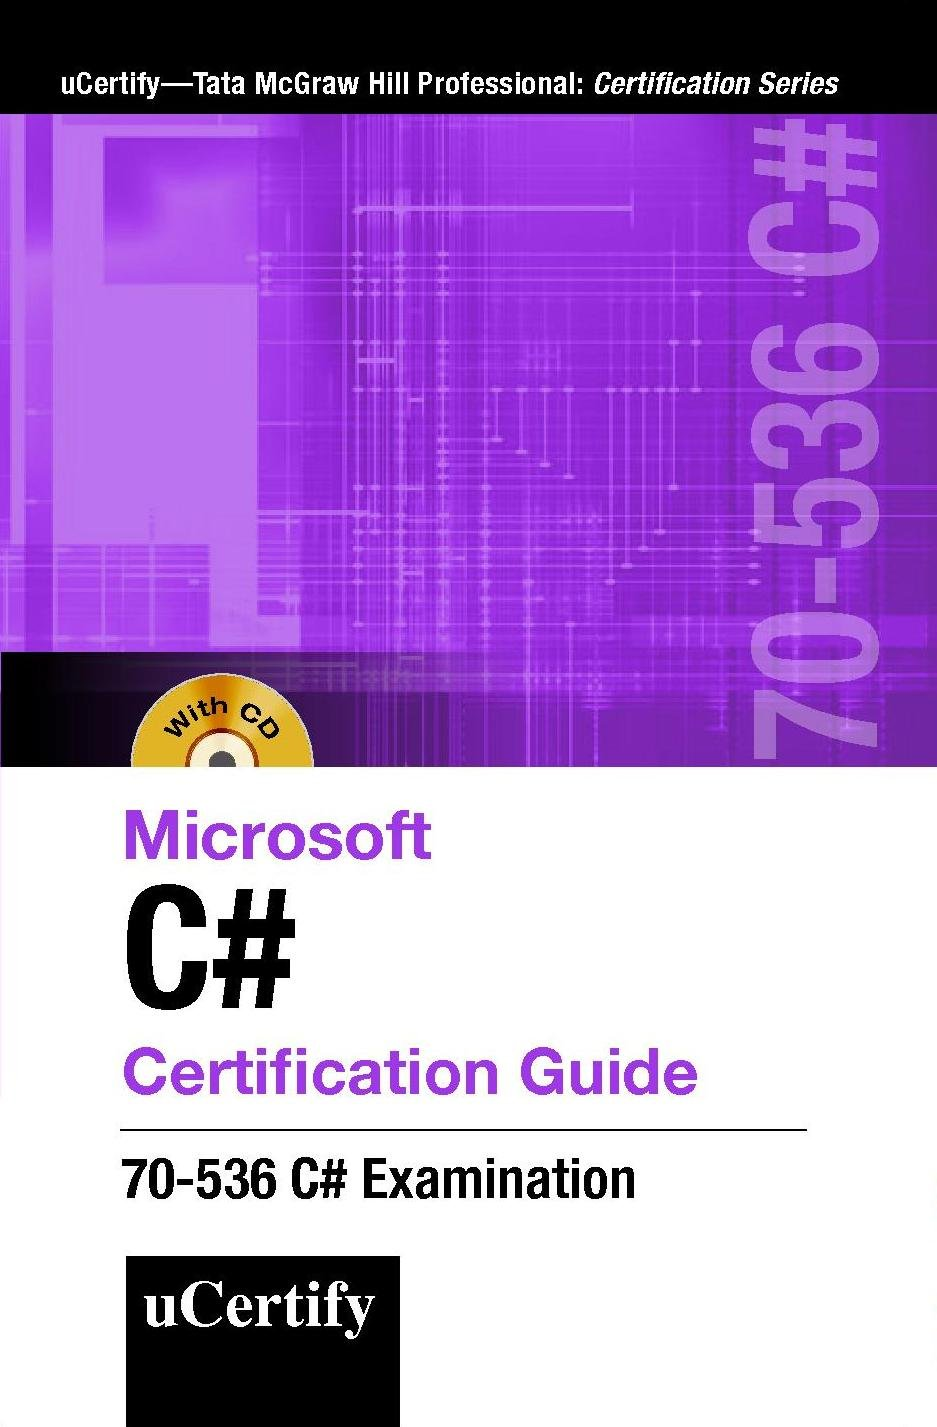 Microsoft c certification guide 70 536 c examination microsoft c certification guide 70 536 c examination 9780071078481 amazon books xflitez Gallery